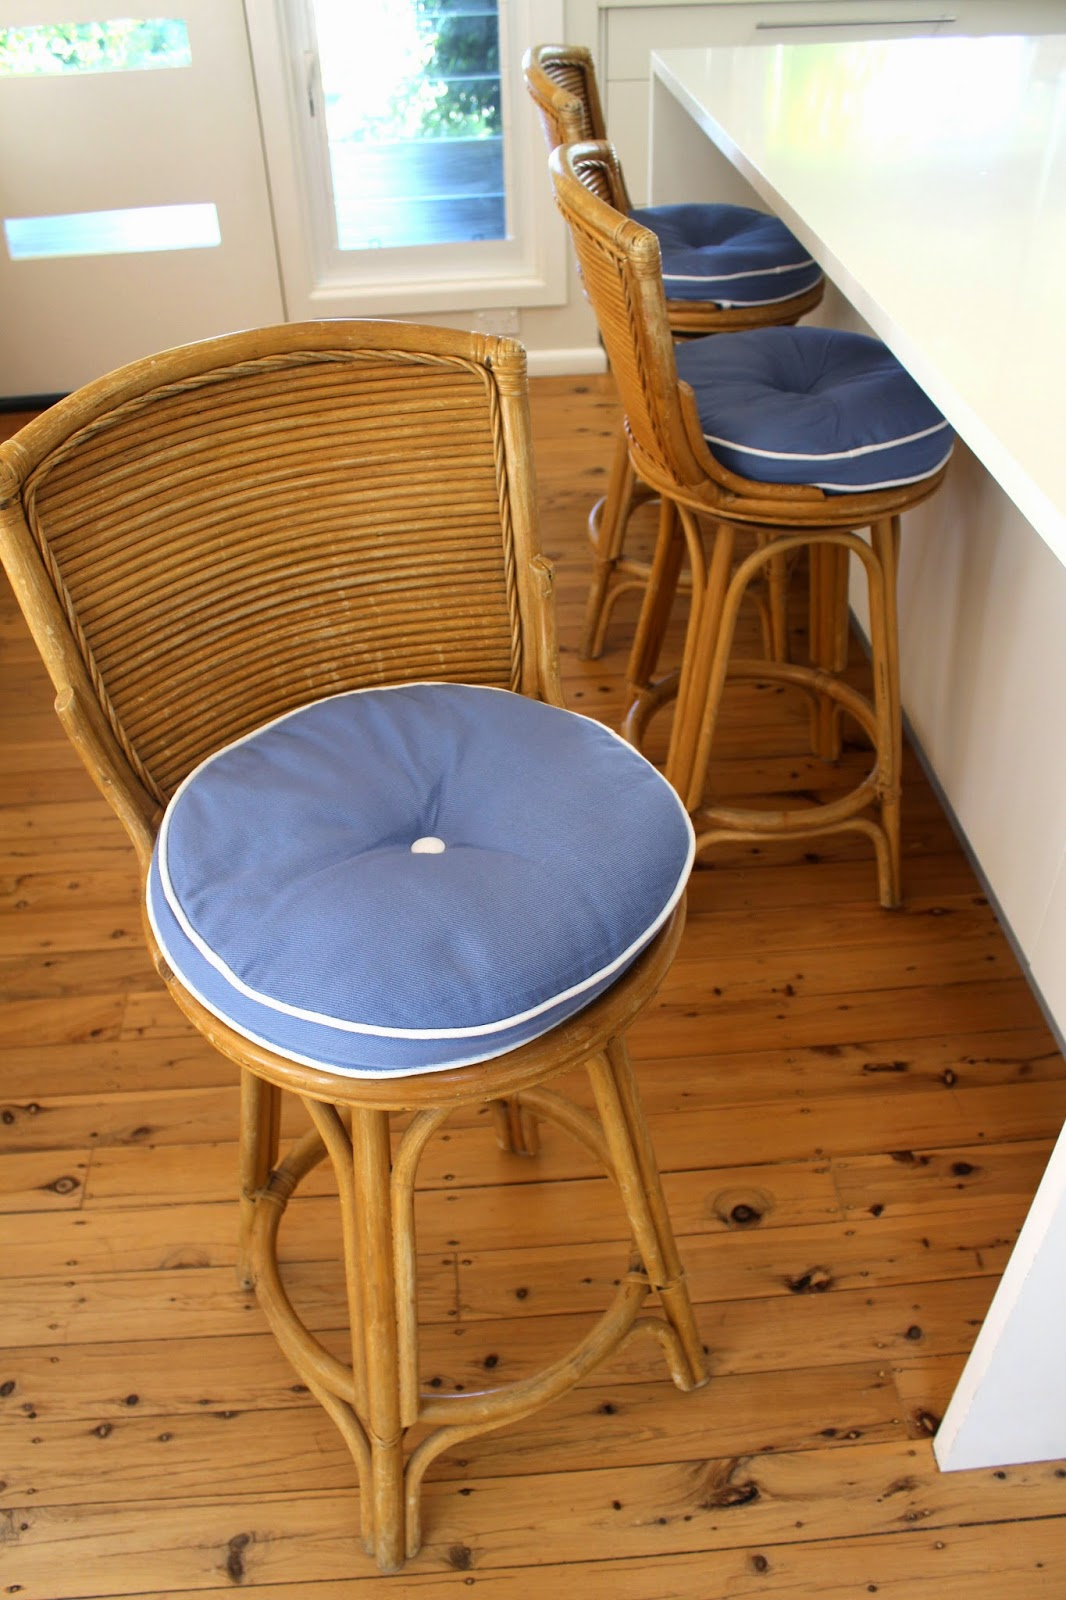 Coastal styling and craft ideas desire empire - Beach House Bar Stools A Two Minute Makeover